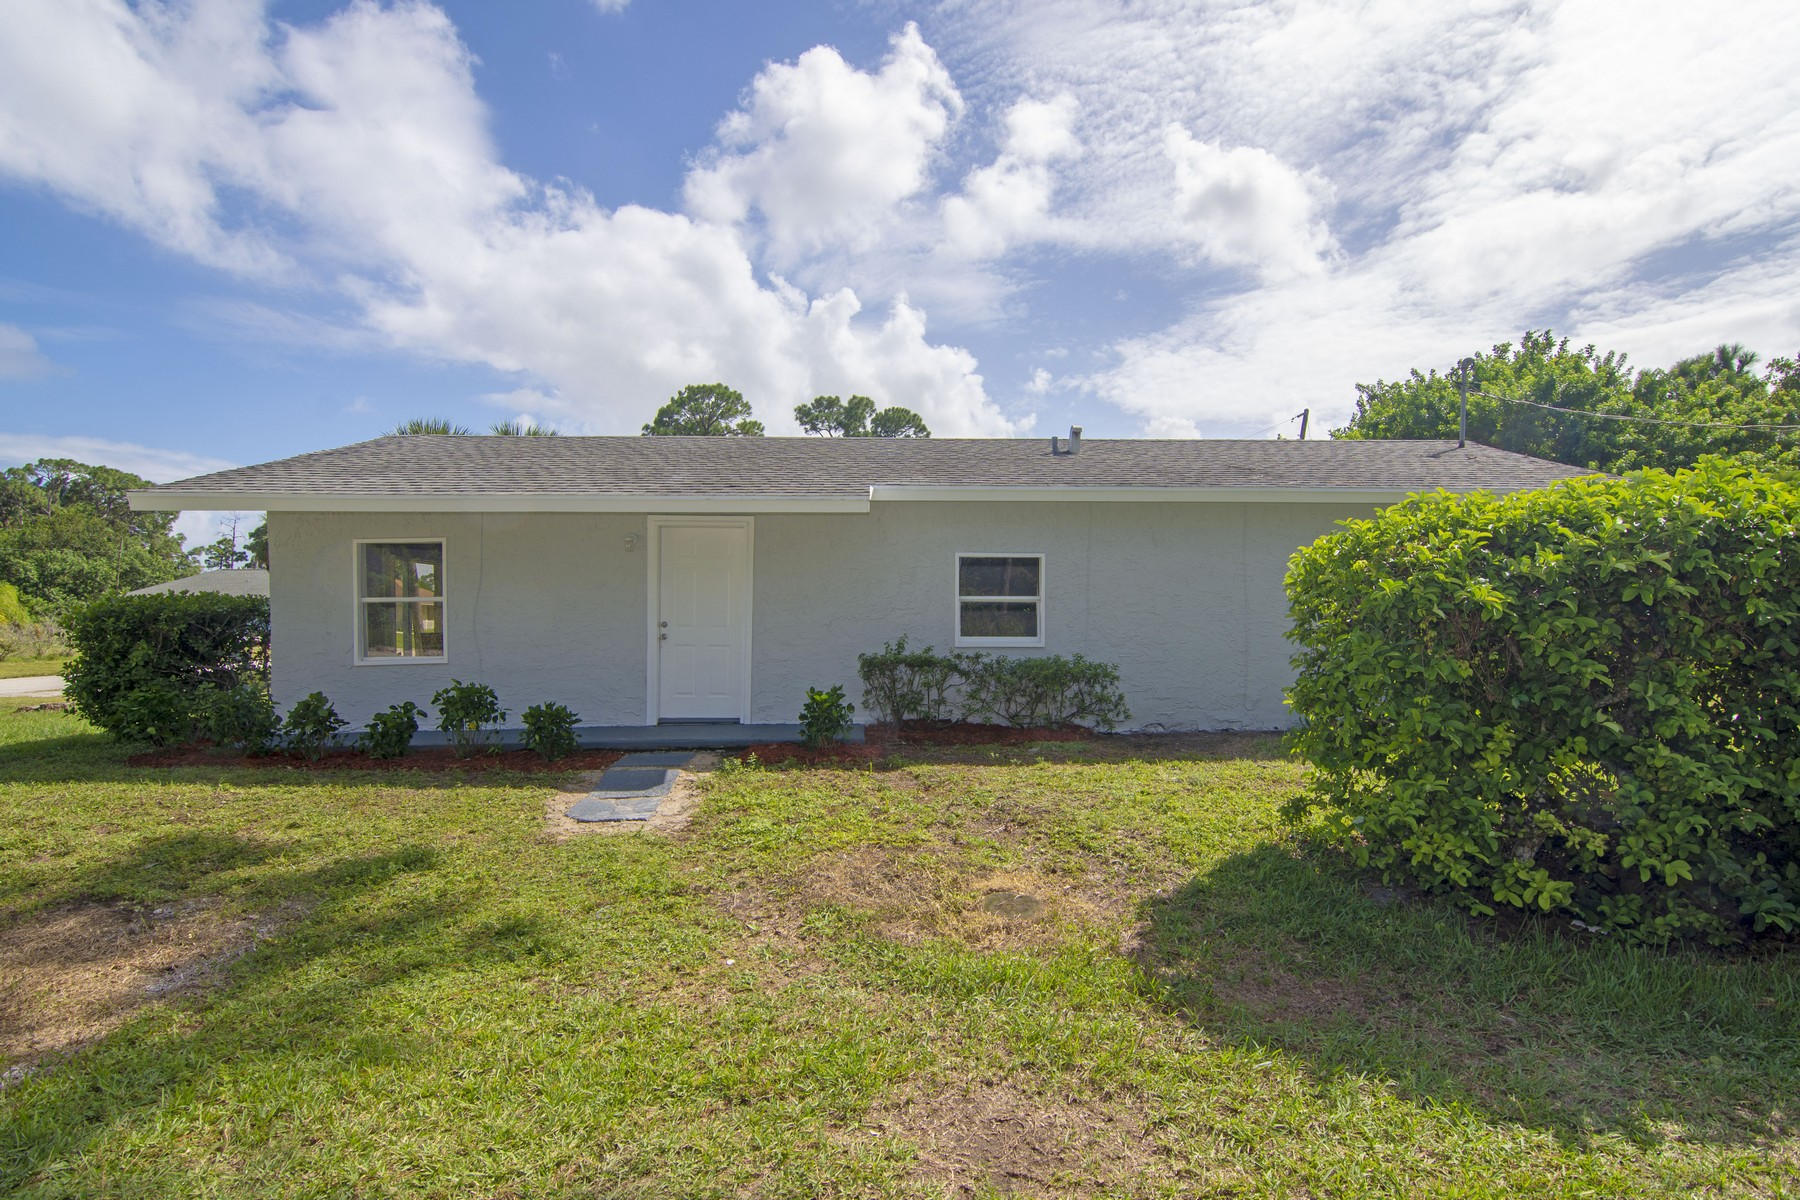 Single Family Homes のために 売買 アット Completely Remodeled Home! 1145 7th St SW Vero Beach, フロリダ 32962 アメリカ